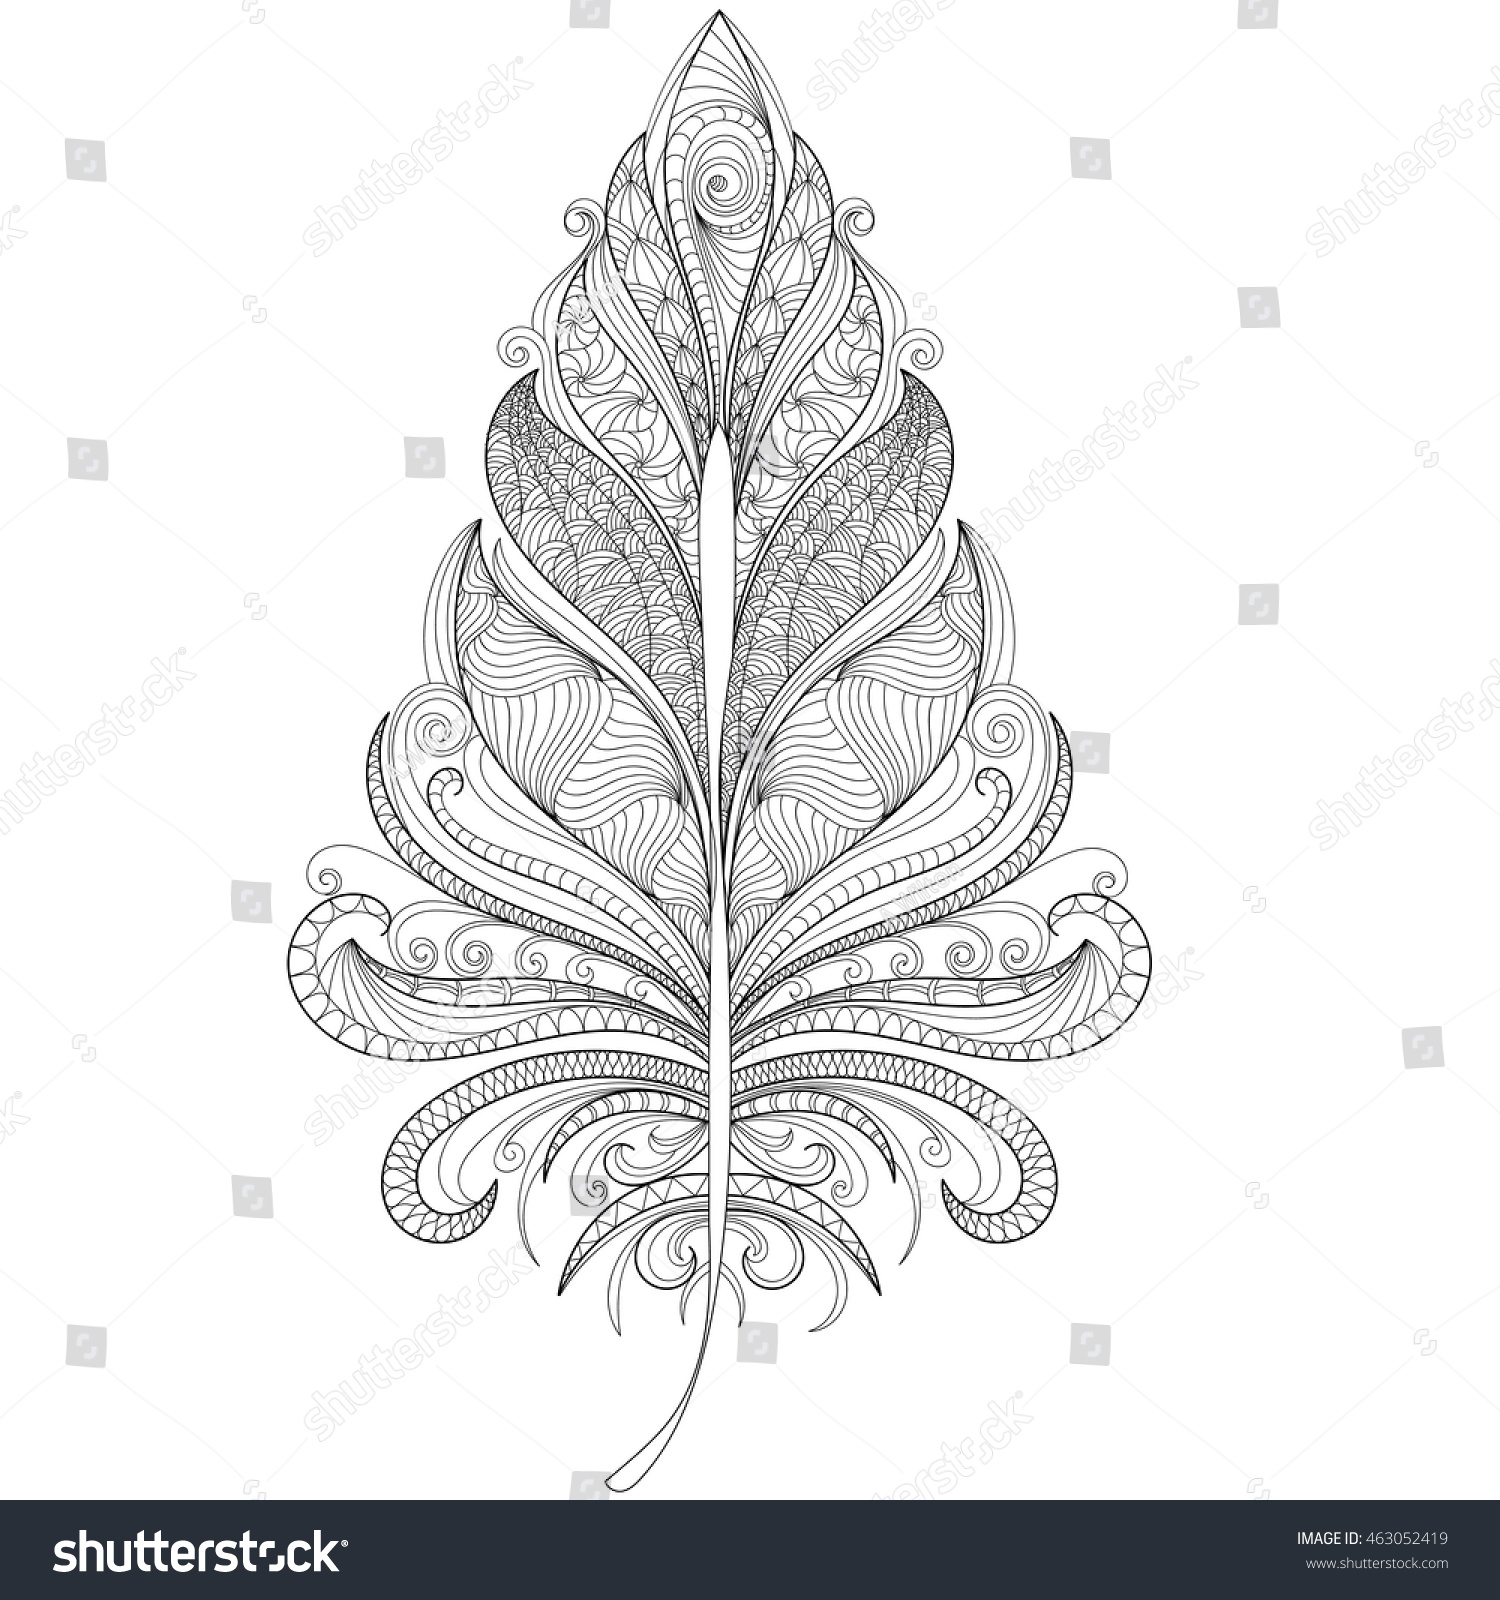 hand drawn bird feather coloring stock vector 463052419